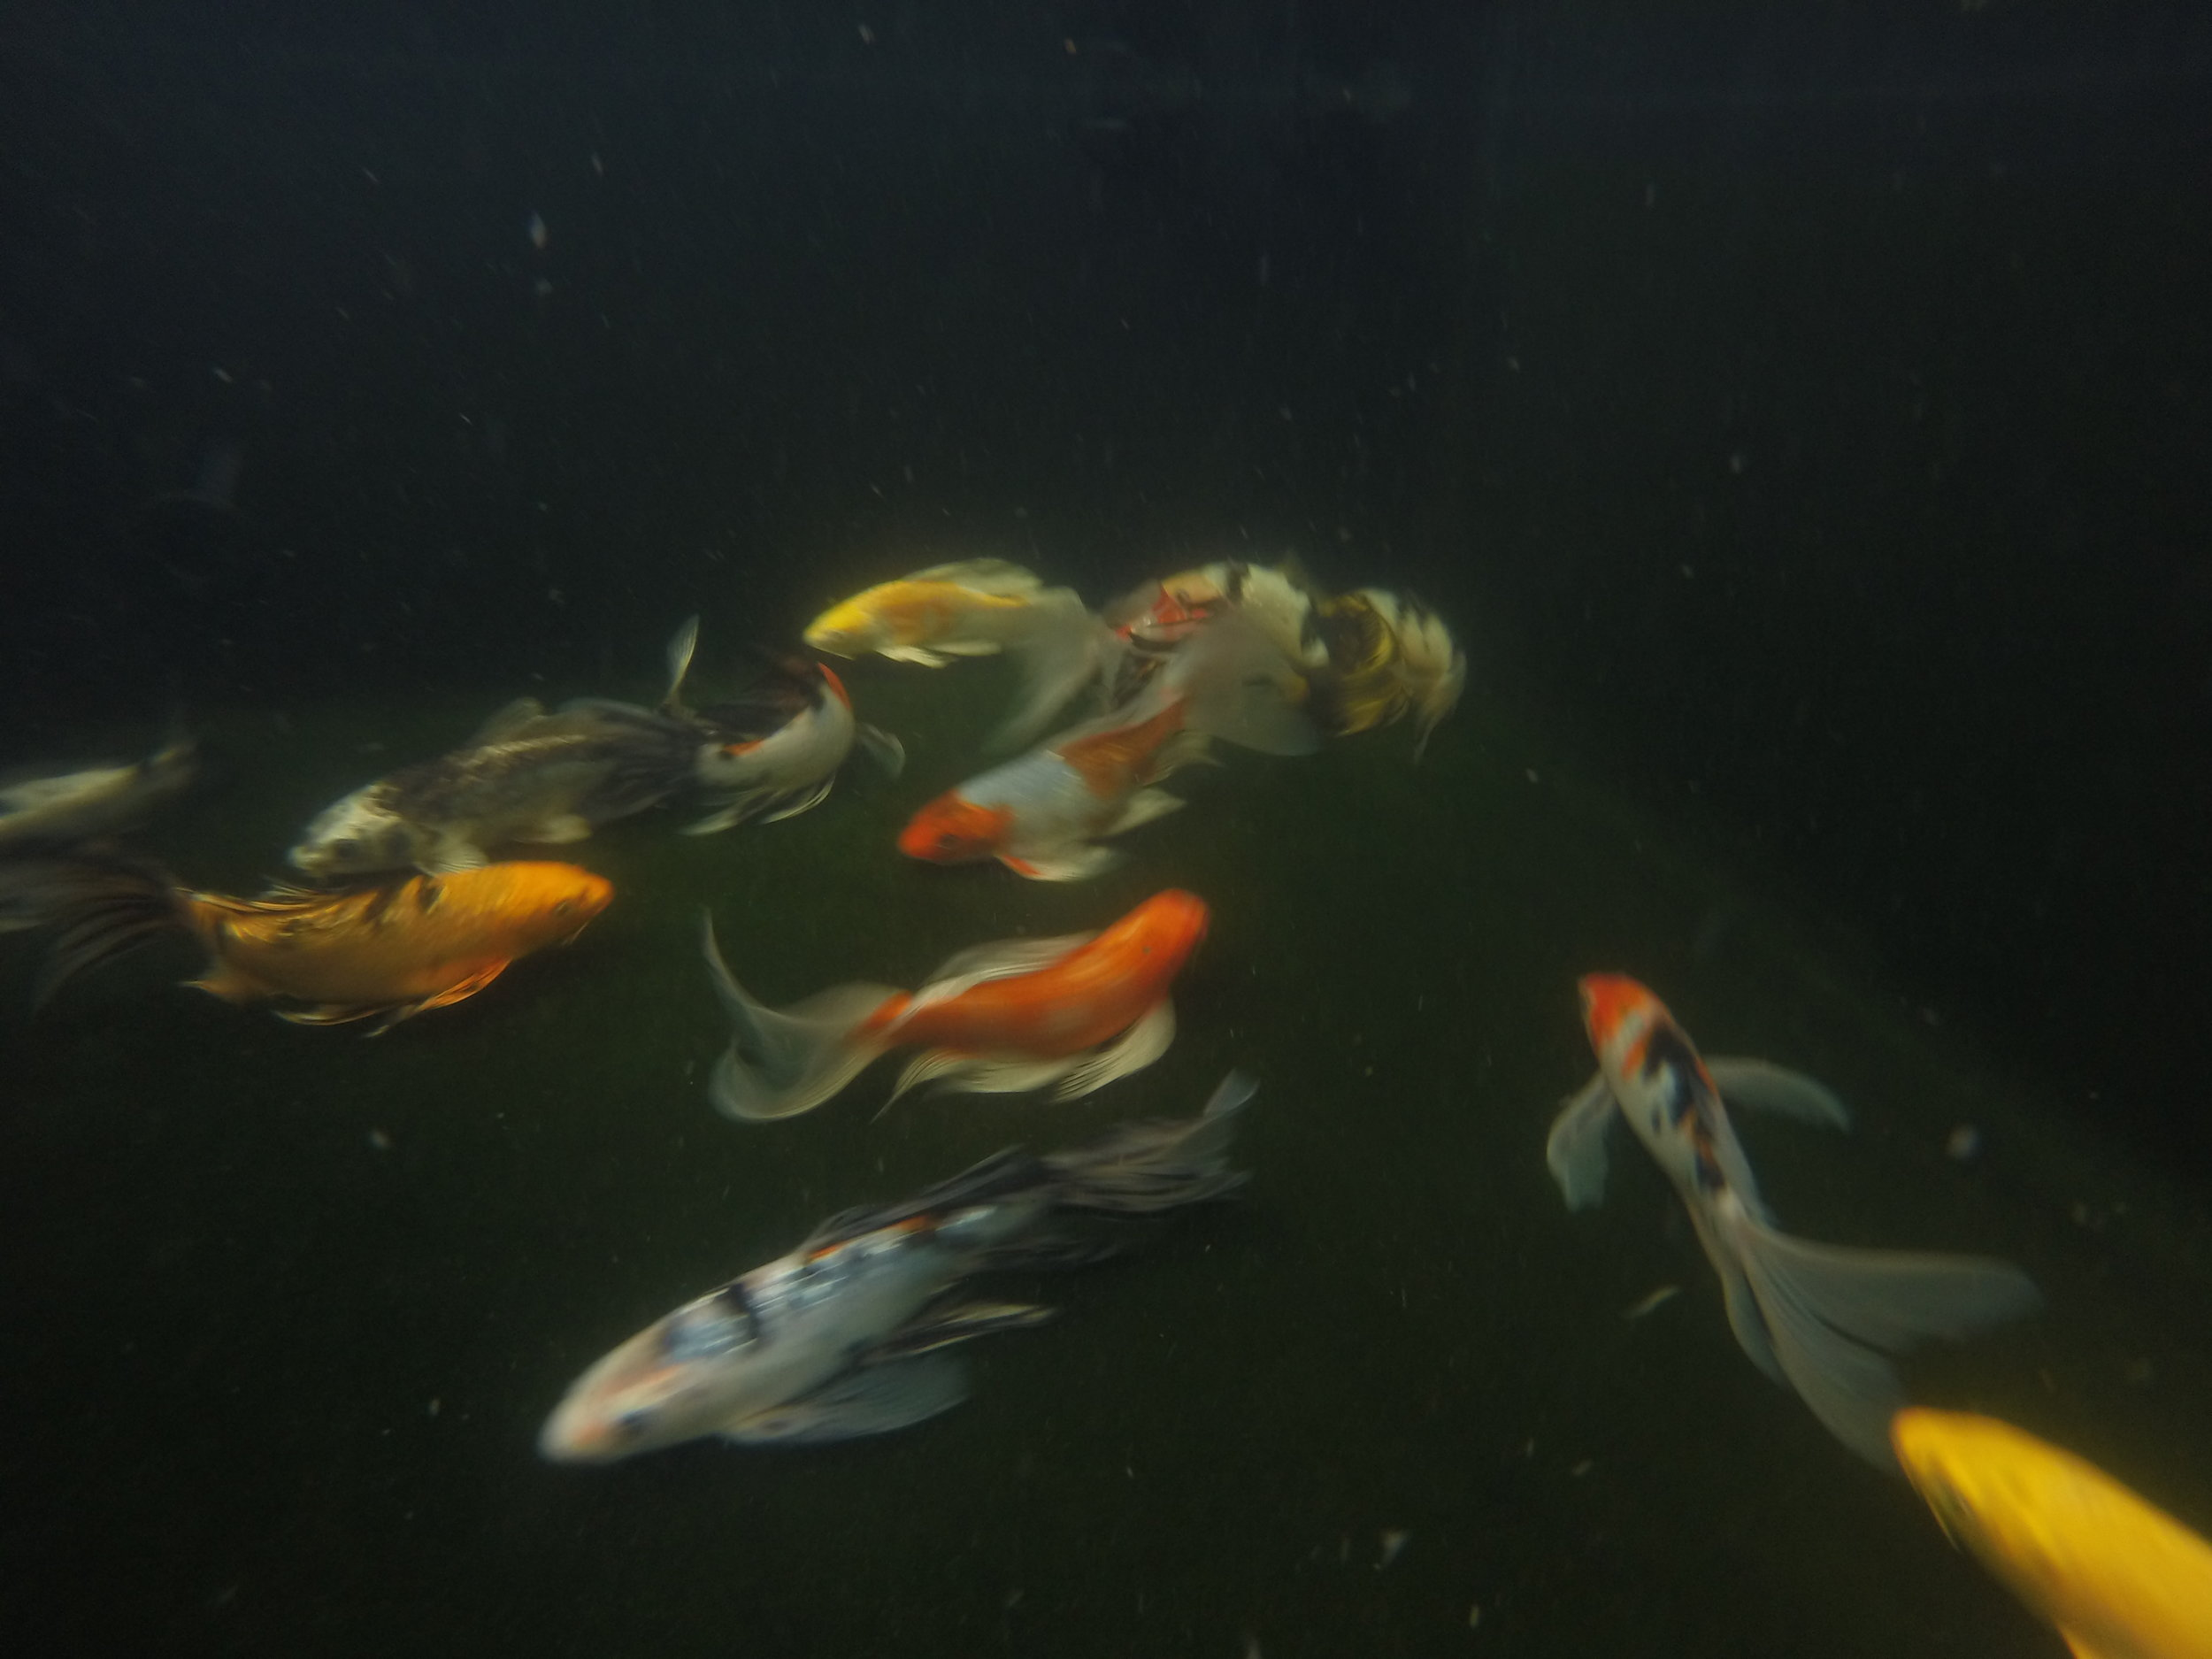 Examples of Butterfly Koi are becoming more widely available as demand grows, seeing many variations in color and quality emerge.